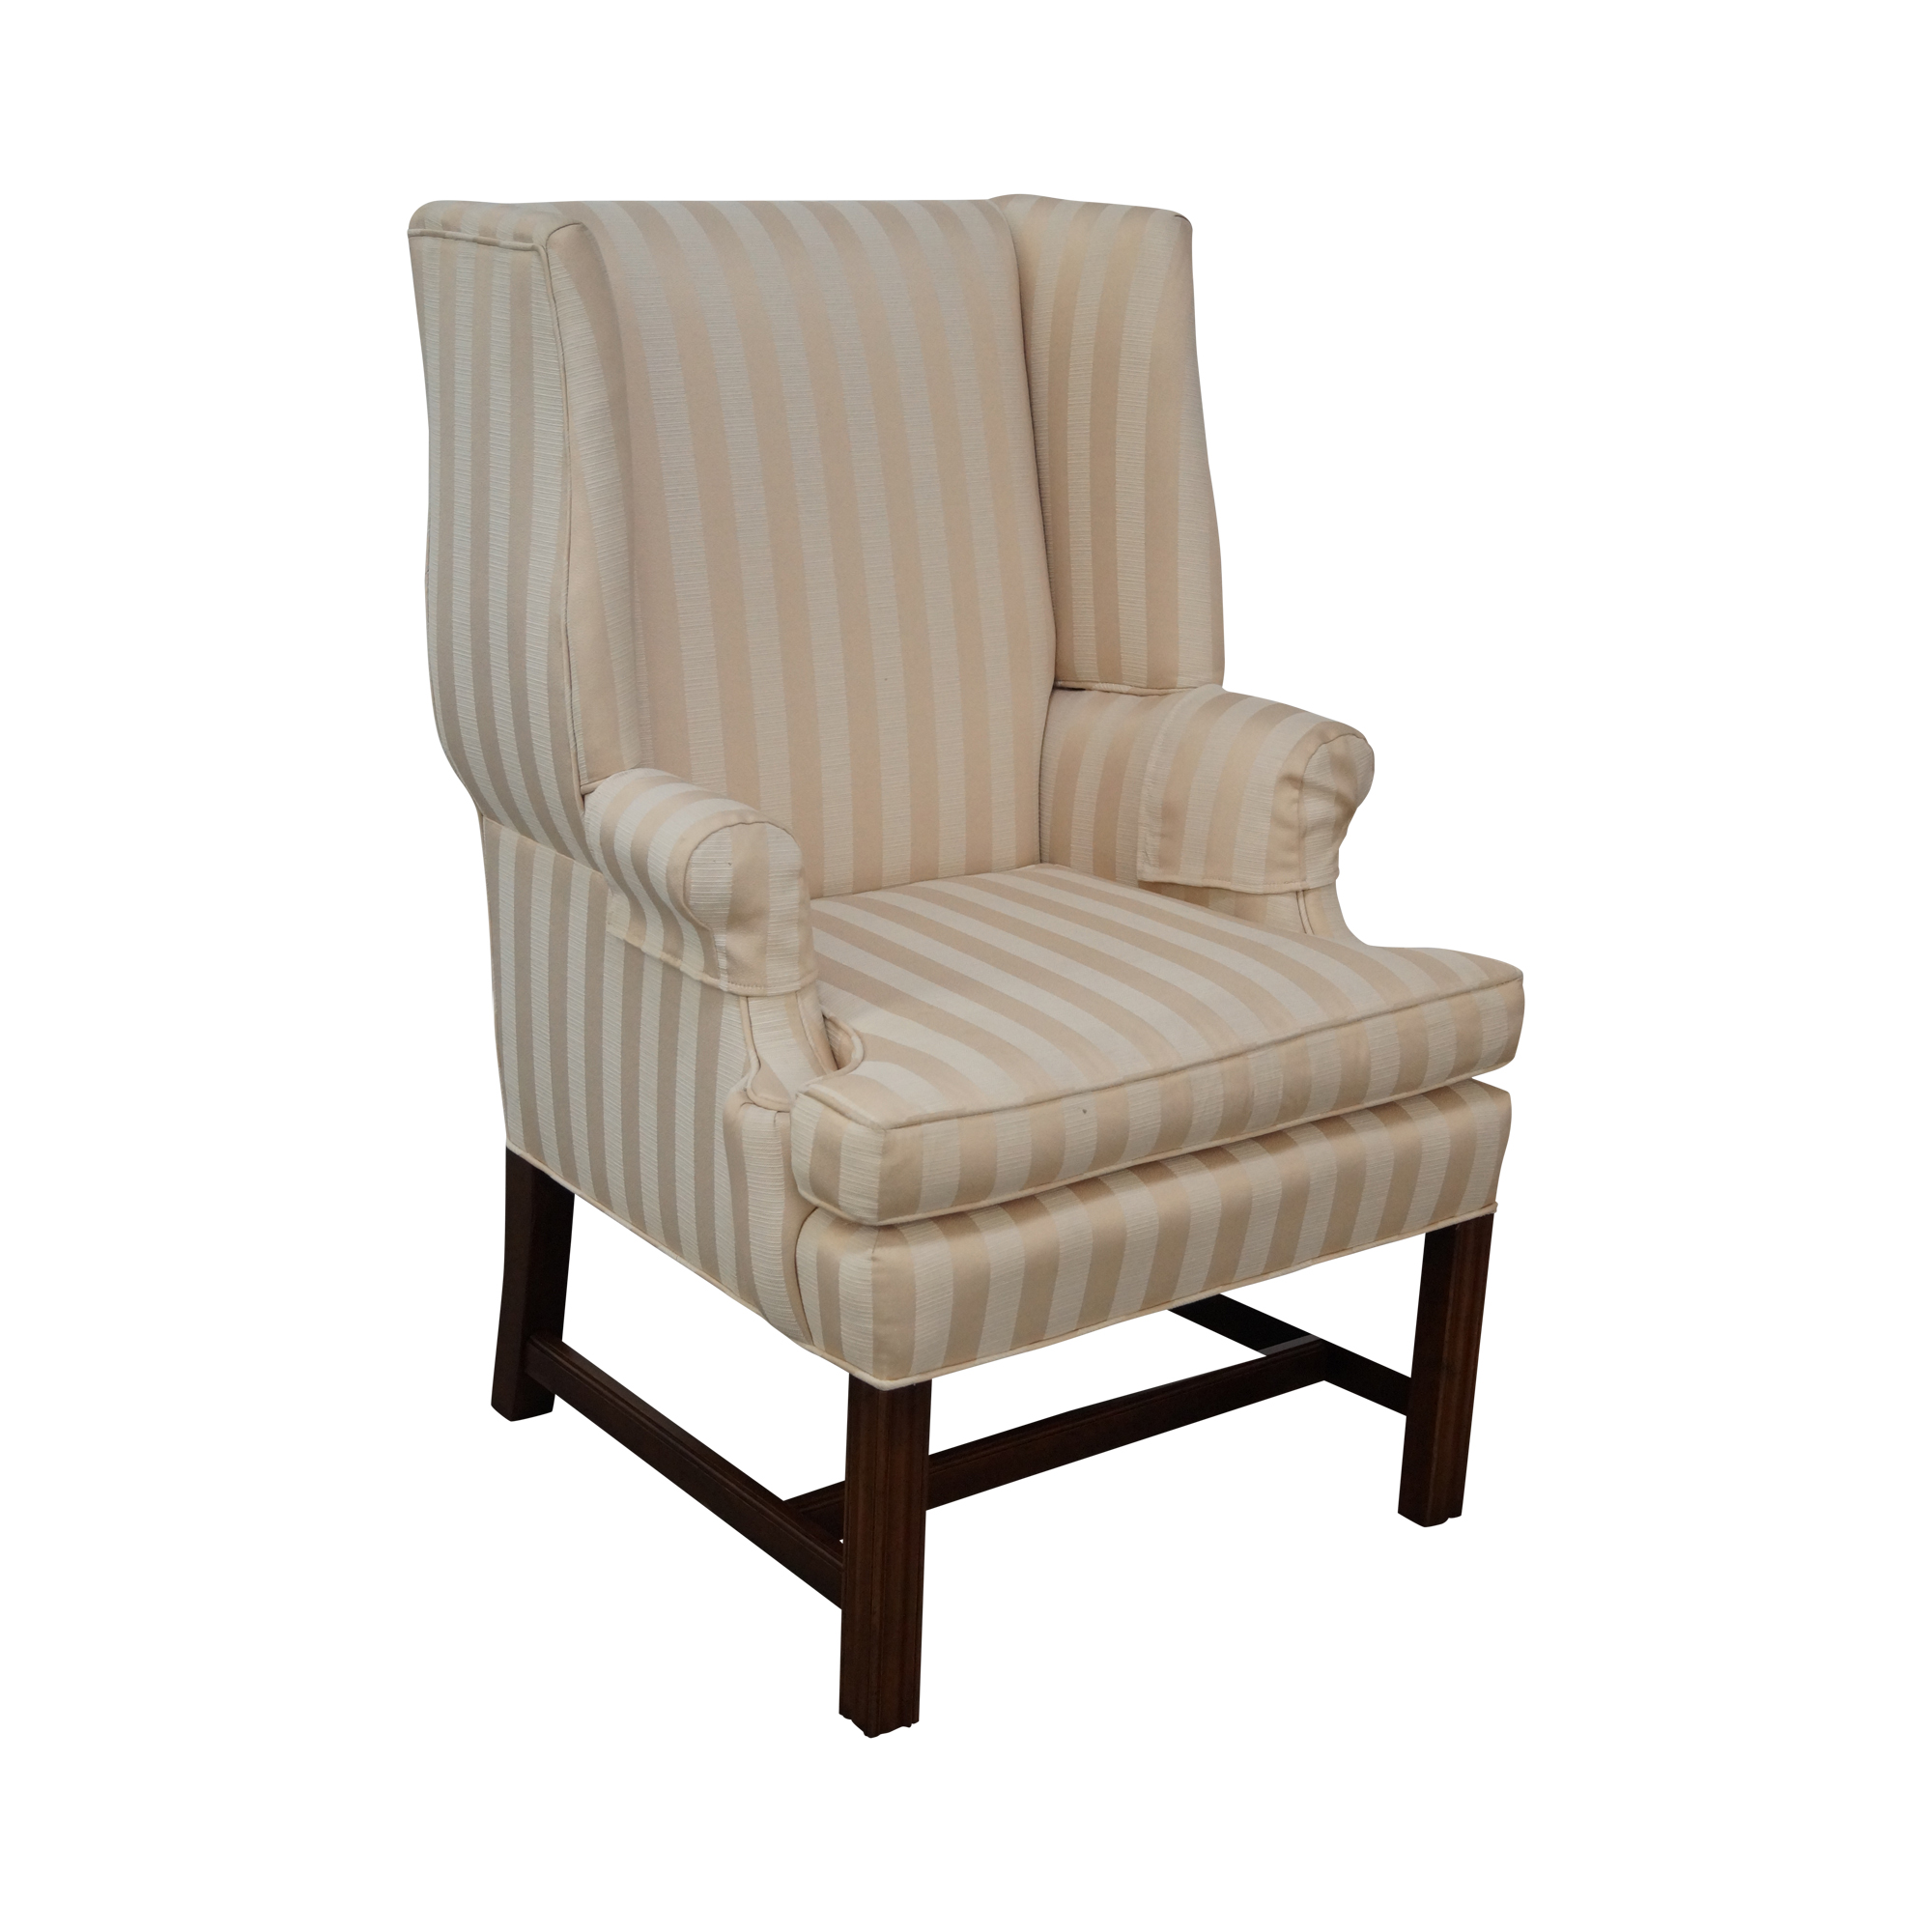 Quality Chippendale Style Mahogany Wing Chair Chairish